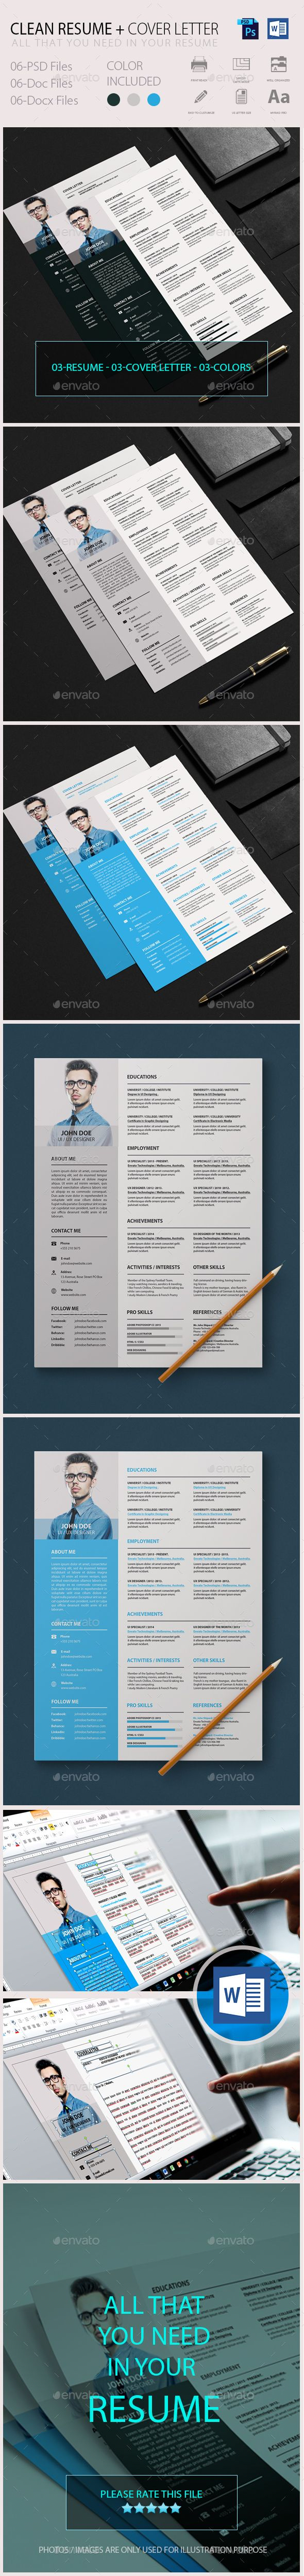 395 Best Curriculum Vitae Images On Pinterest Resume Resume